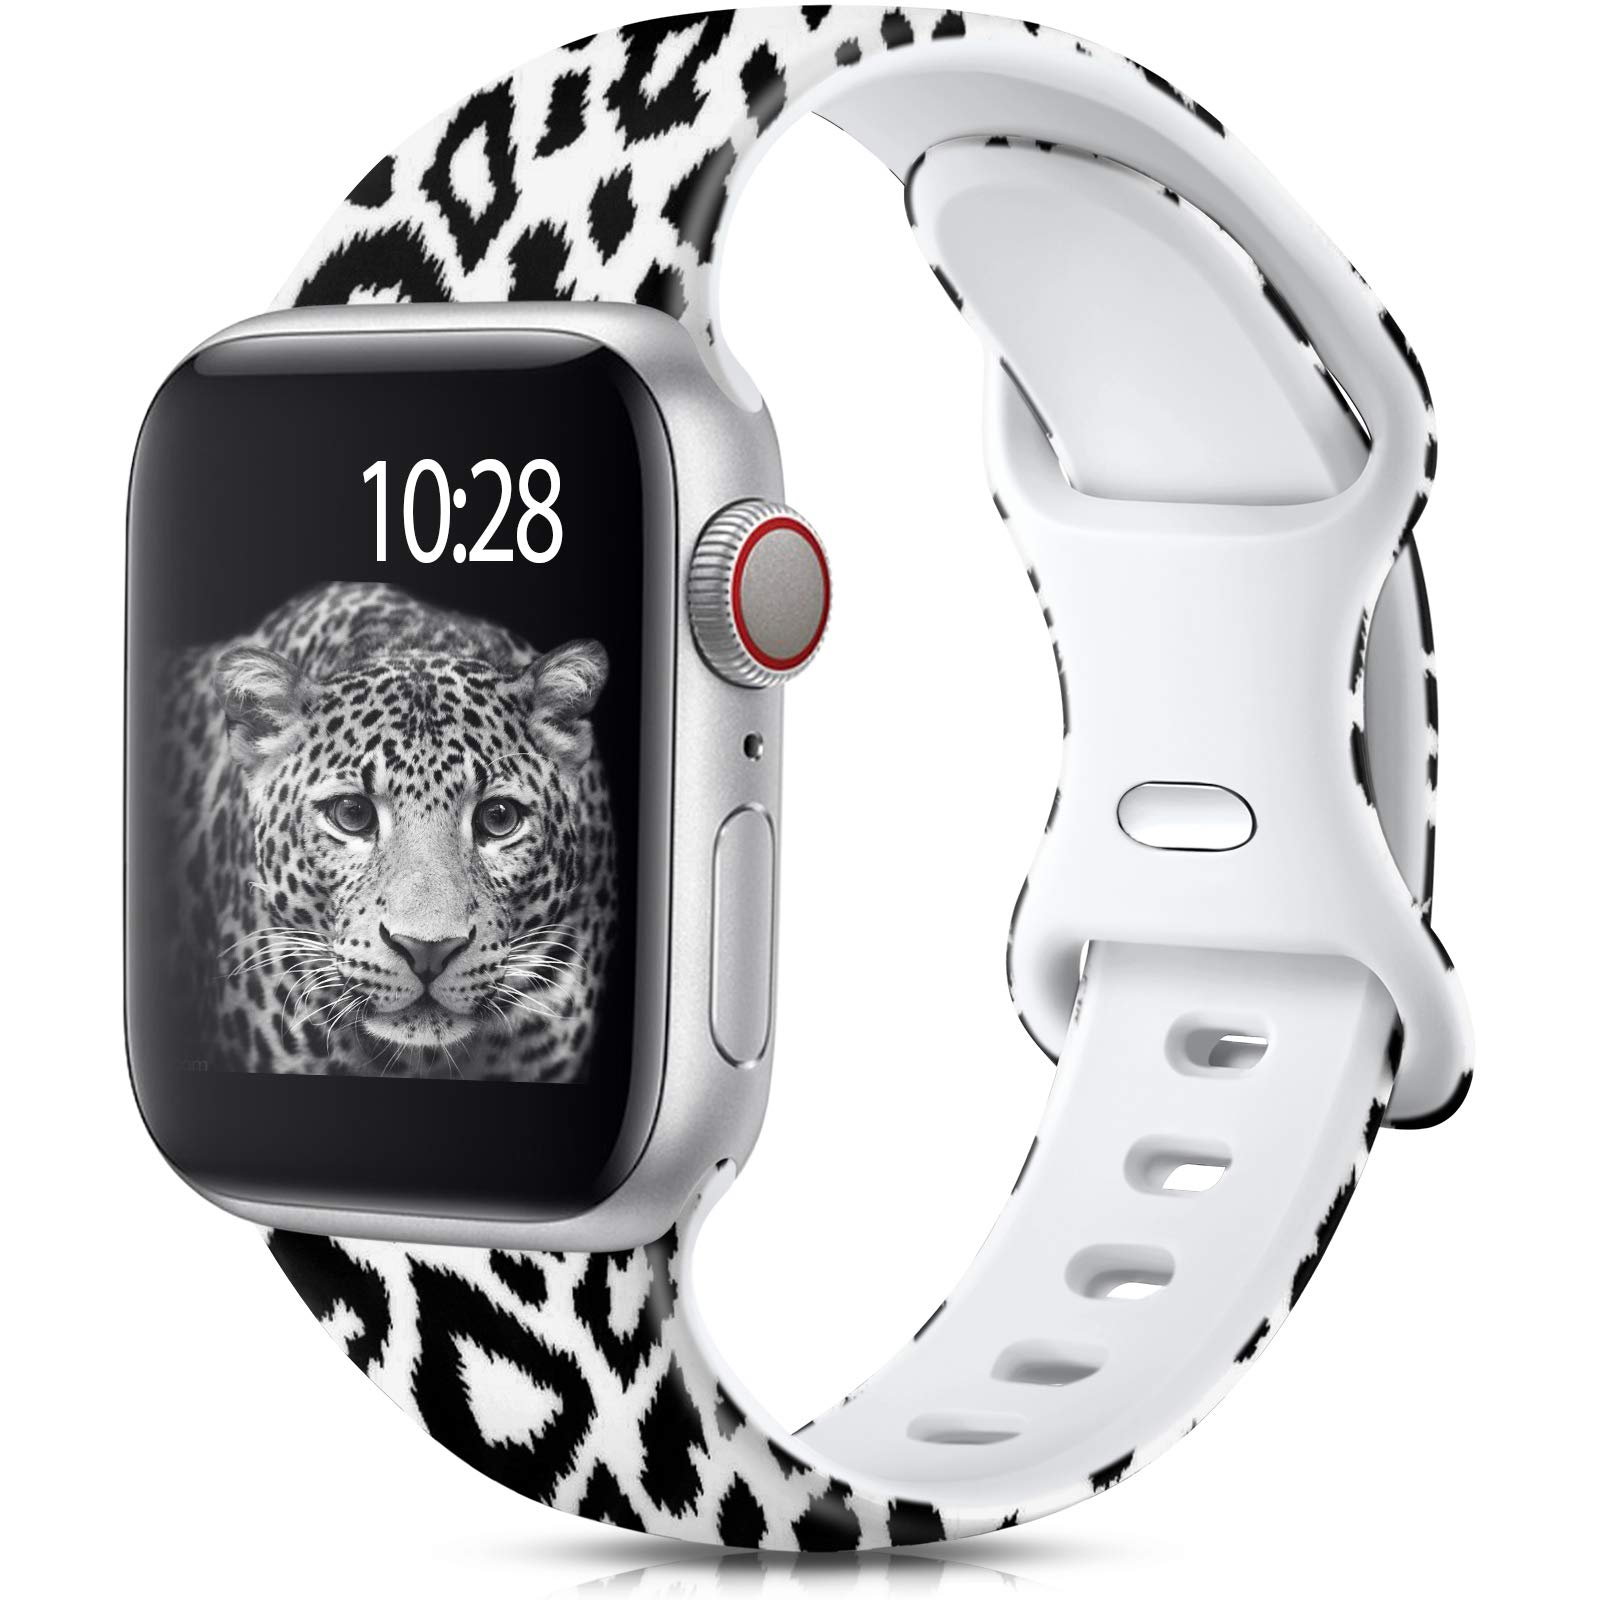 Muranne Compatible with Apple Watch Band SE 40mm 38mm for Women Men, Fancy Fadeless Printed Replacement Wristbands Soft Silicone Sport Bands for iWatch Series 6 5 4 3 2 1, Black Leopard, S/M